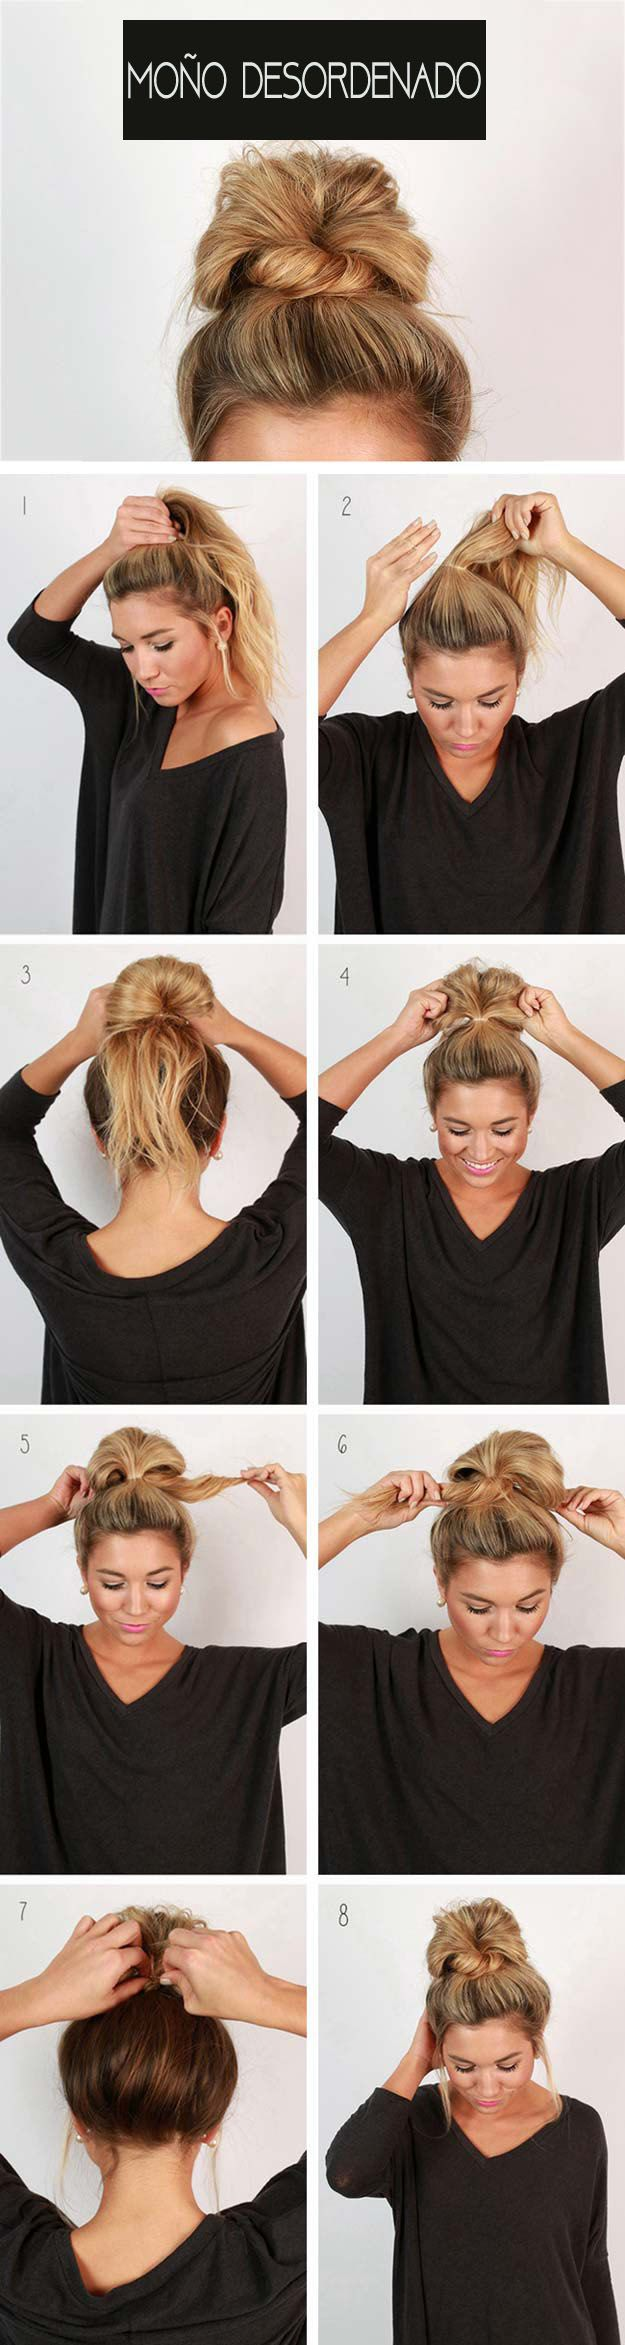 + 25 easy hairstyles 2018-2019 step by step 6